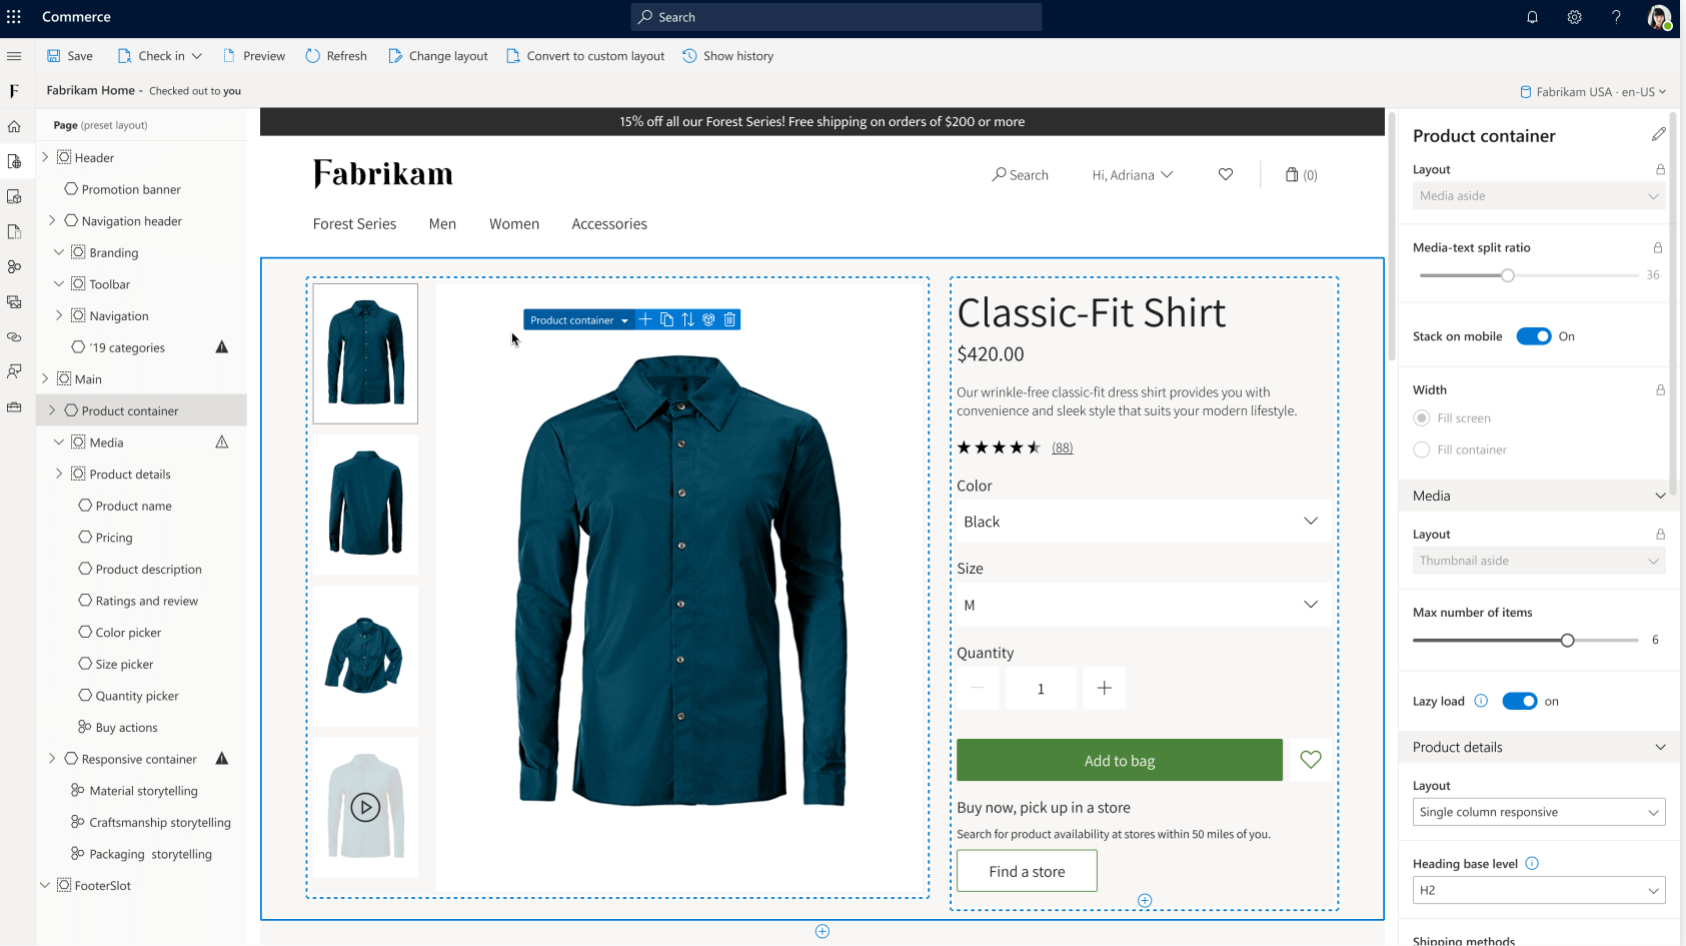 Dynamics 365 Commerce